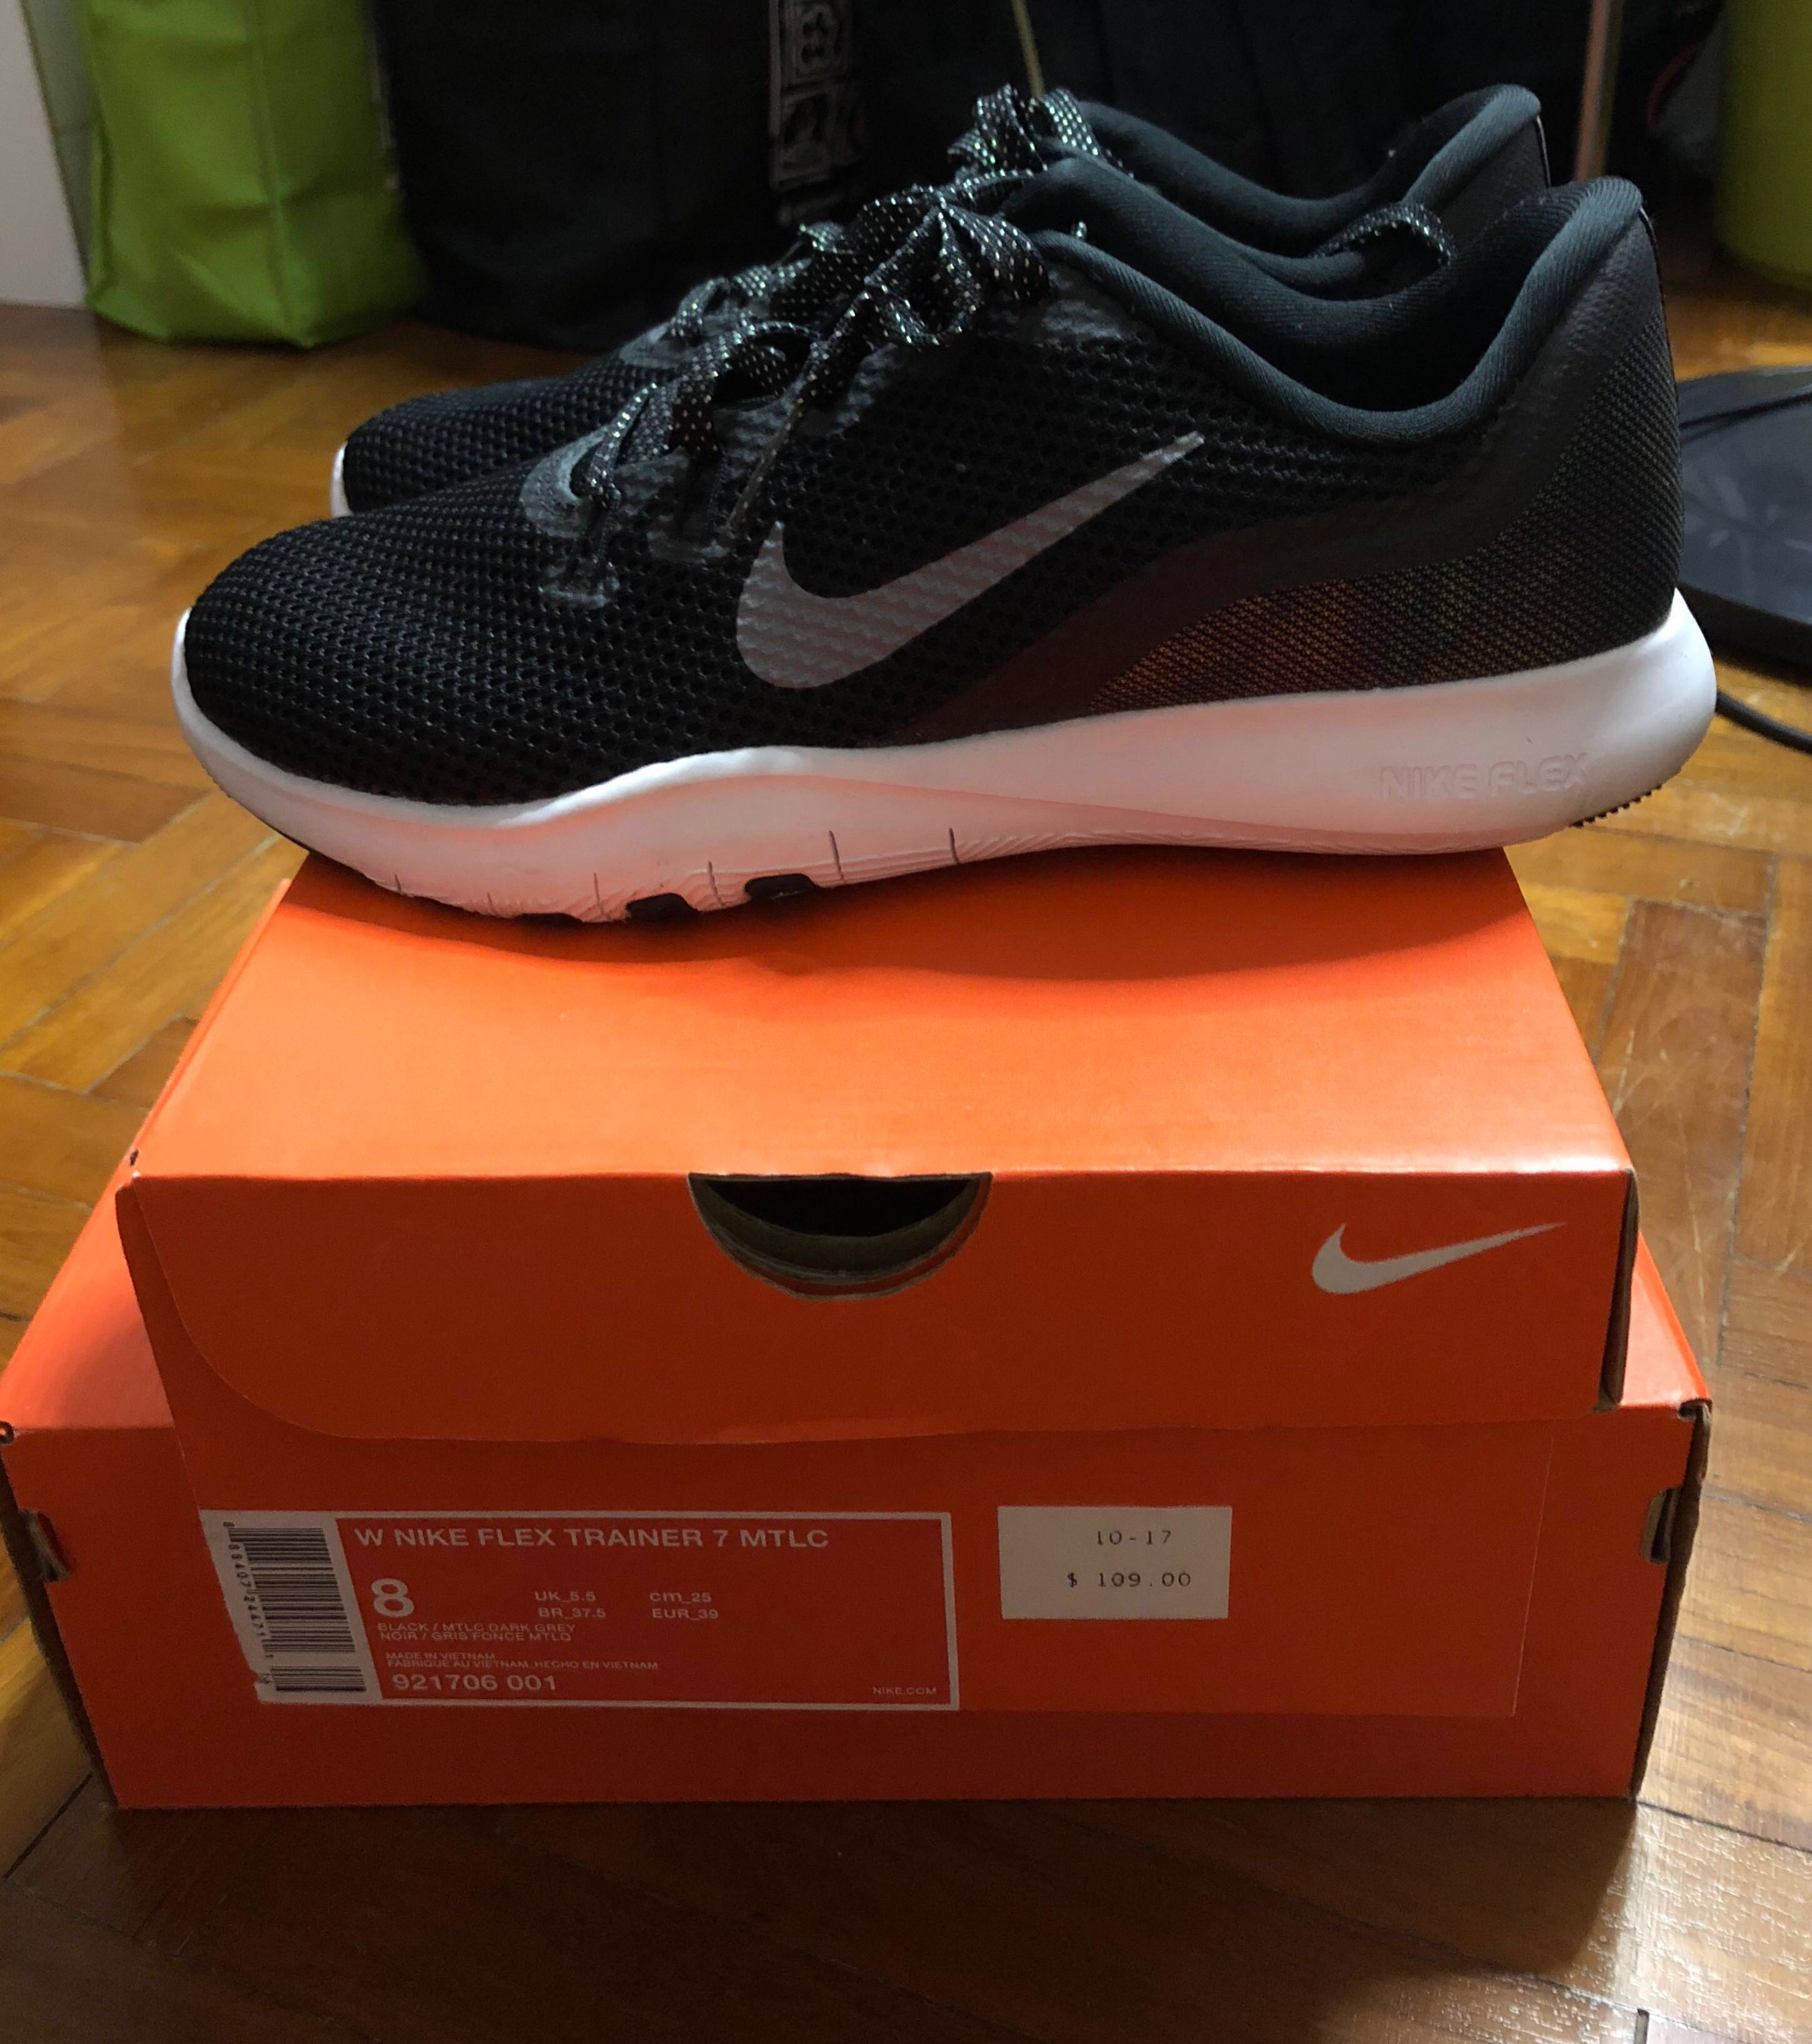 3898cd8980e7c Nike Flex Trainer 7 MLTC